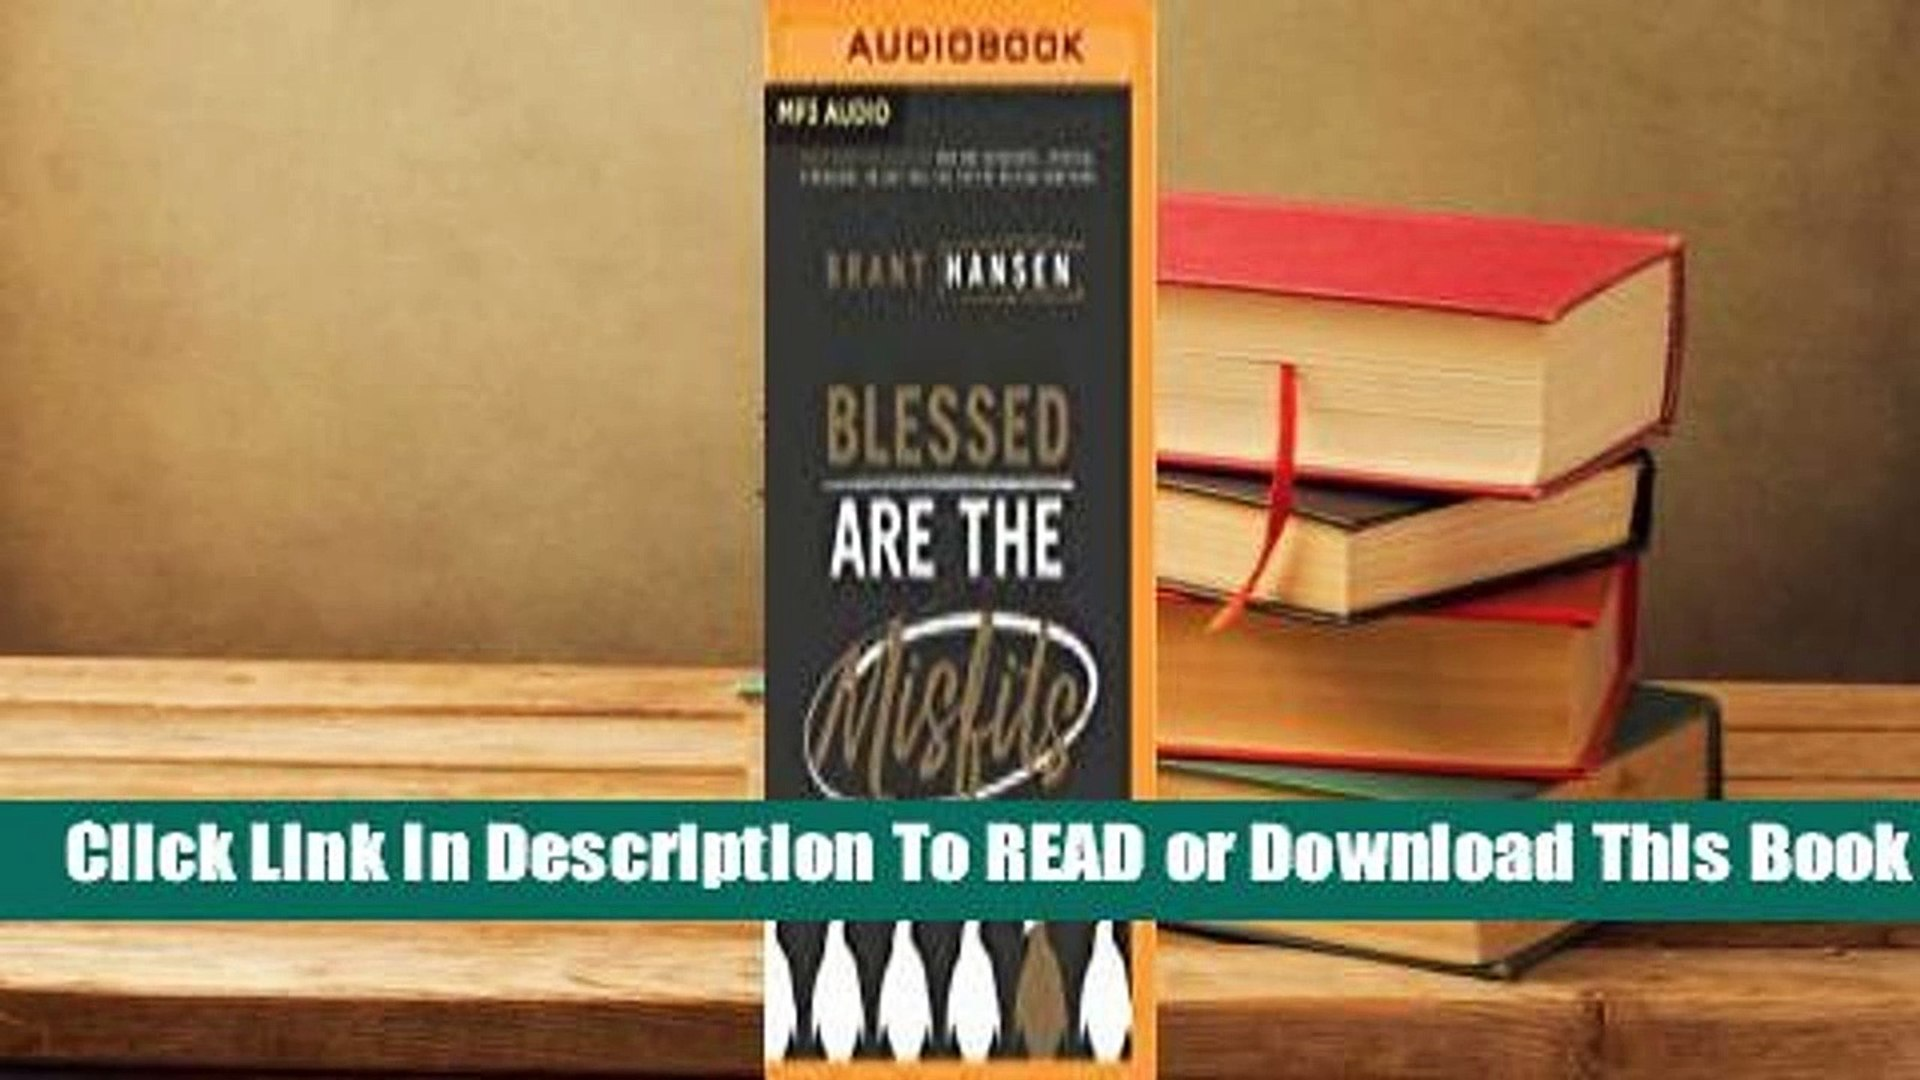 Full E-book Blessed Are the Misfits: Great News for Believers who are Introverts, Spiritual